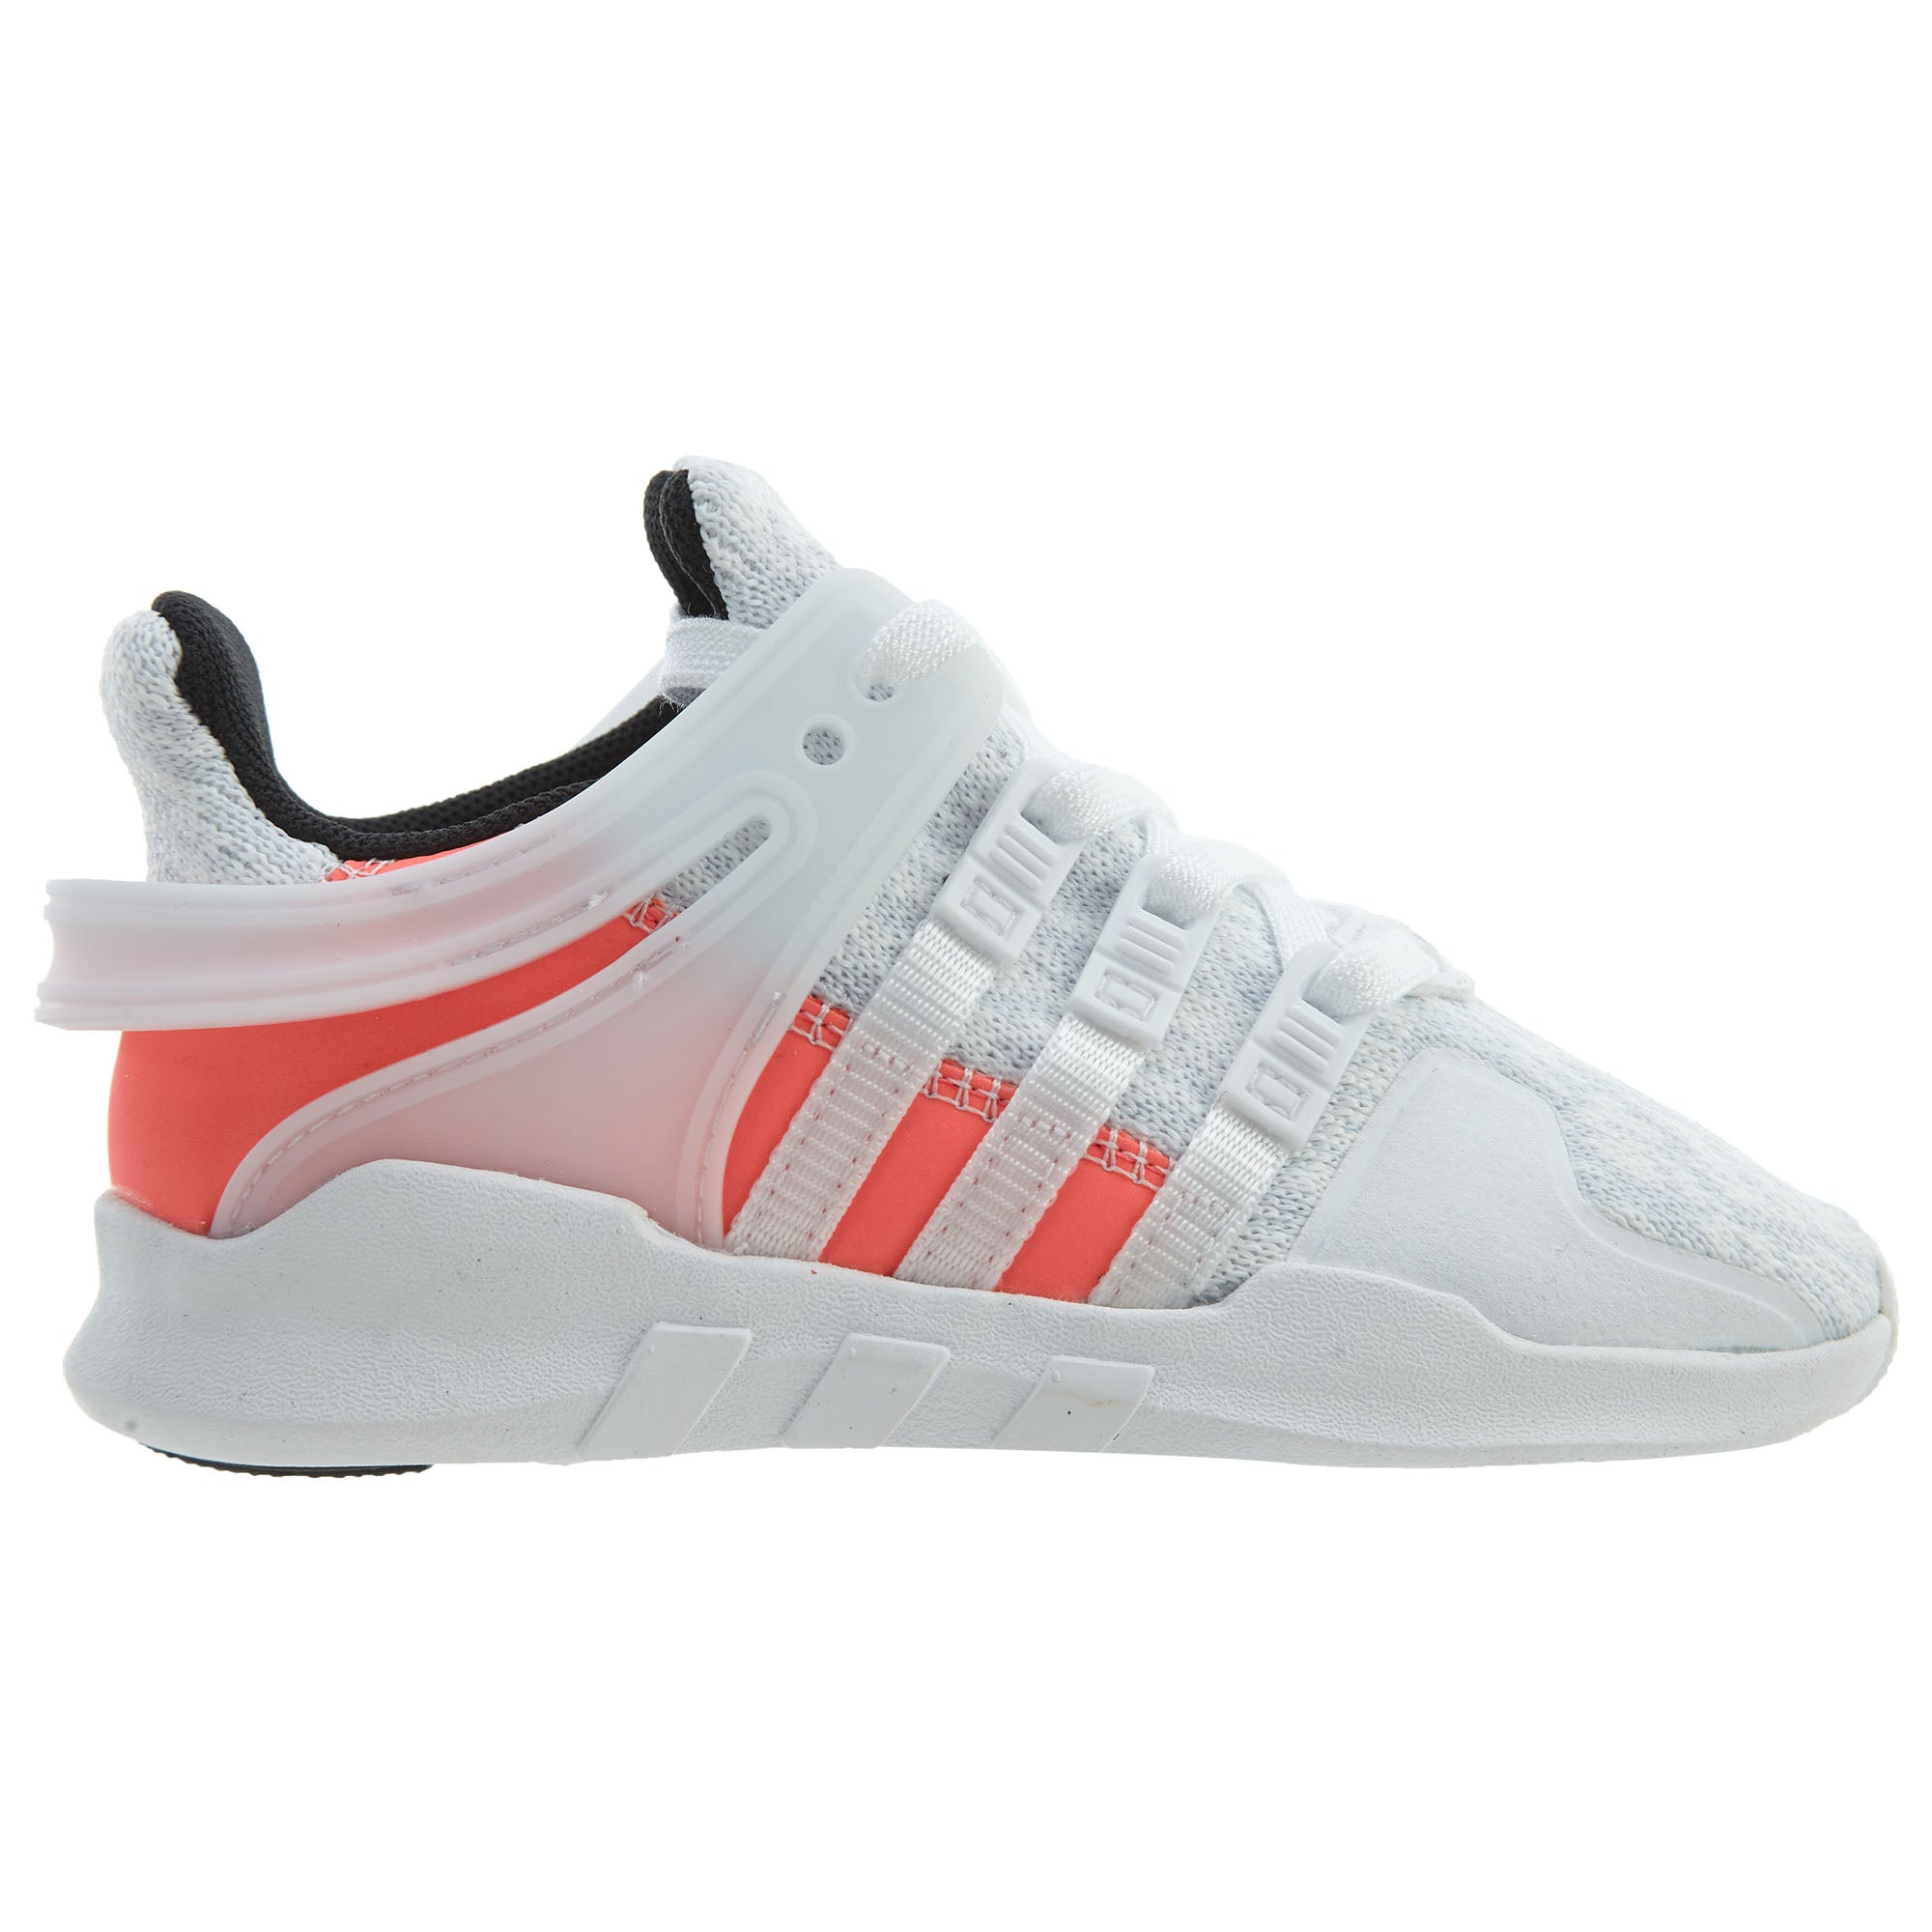 the latest 6103b 546ad Adidas Eqt Support Adv Toddlers Style : Bb0548 – Sneaker Experts